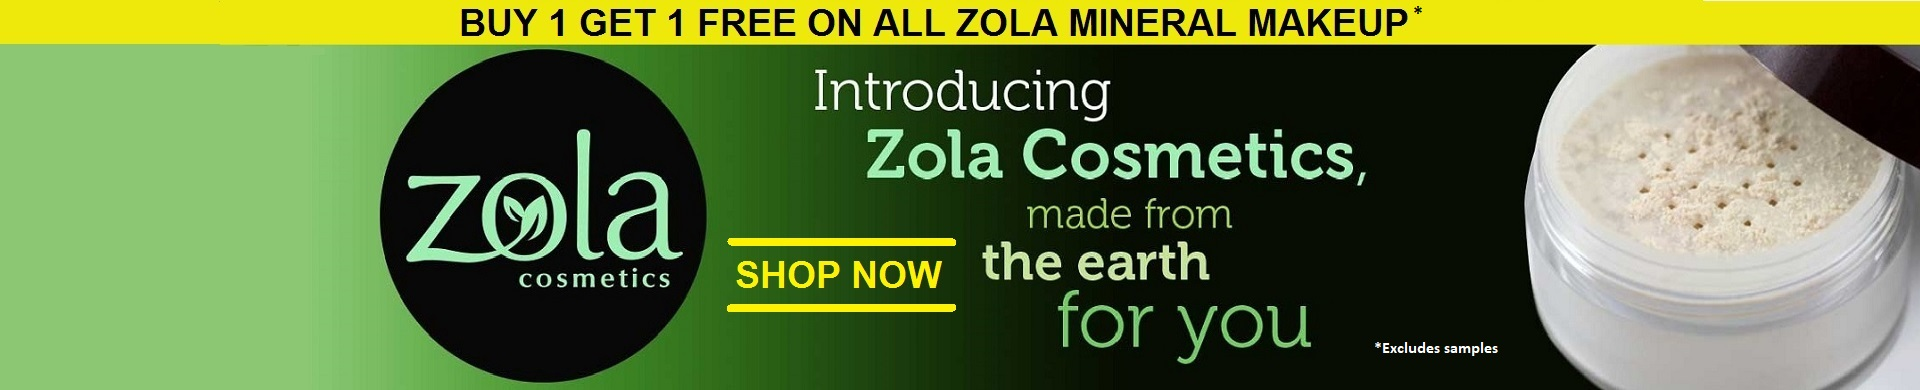 Mineral Makeup from Zola Cosmetics